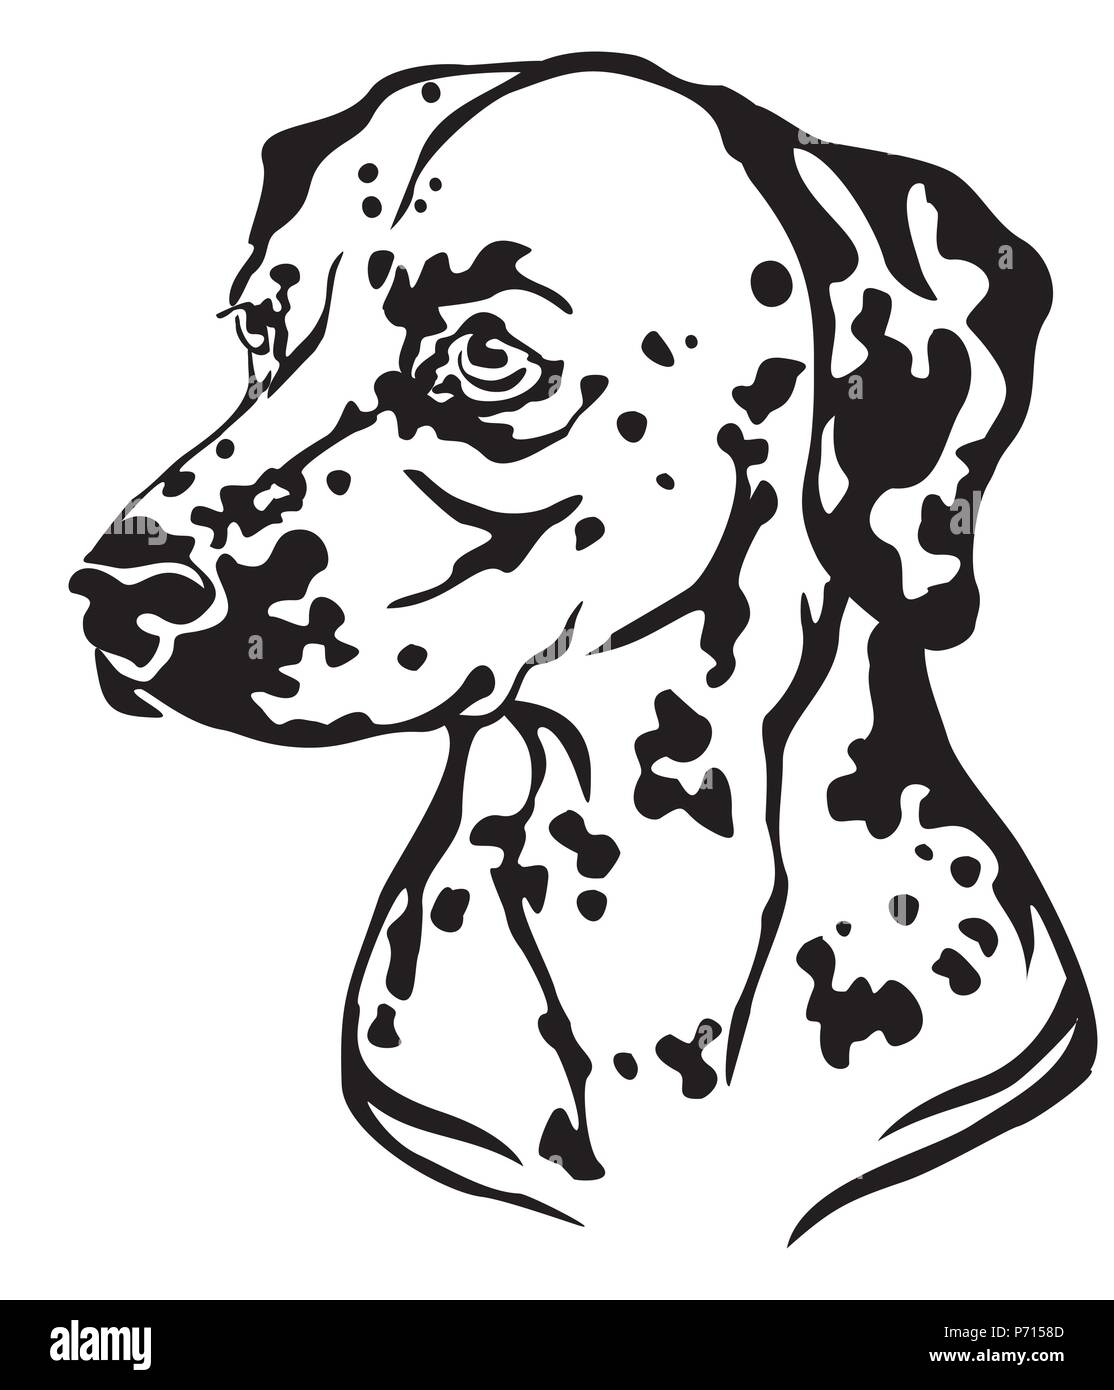 Decorative portrait in profile of Dog Dalmatian, vector isolated illustration in black color on white background. Image for design and tattoo. - Stock Vector